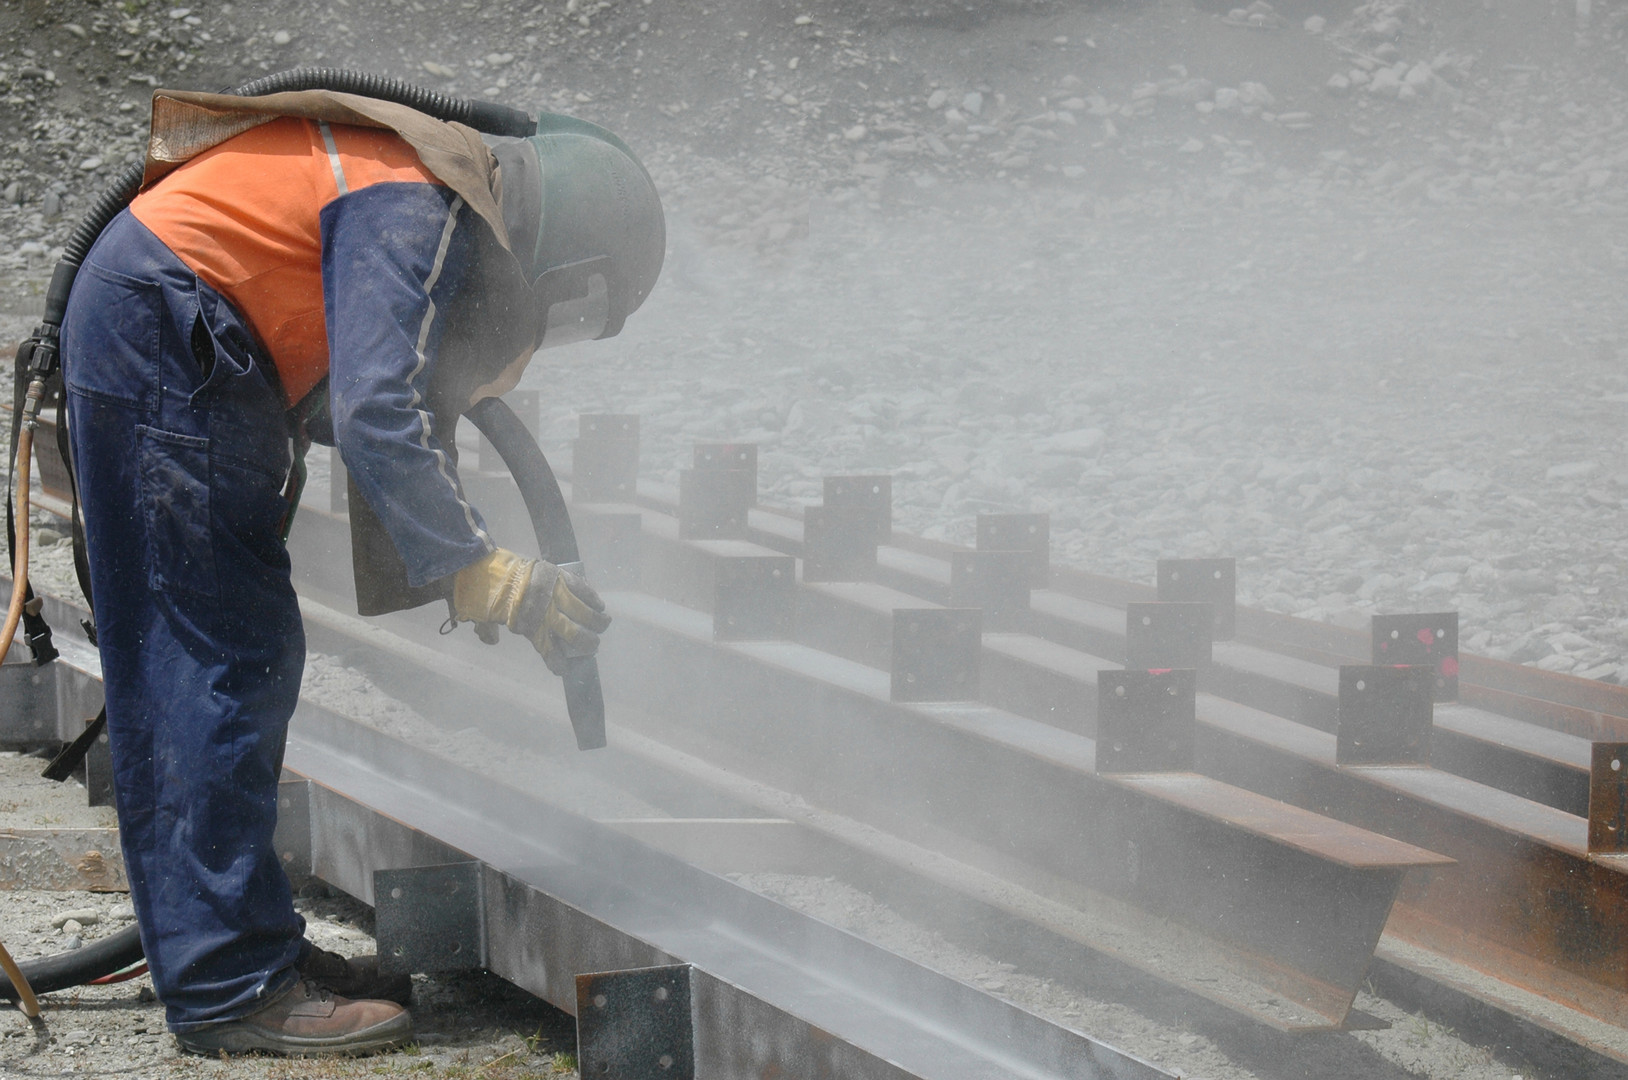 tradesman sandblasting I beams for build